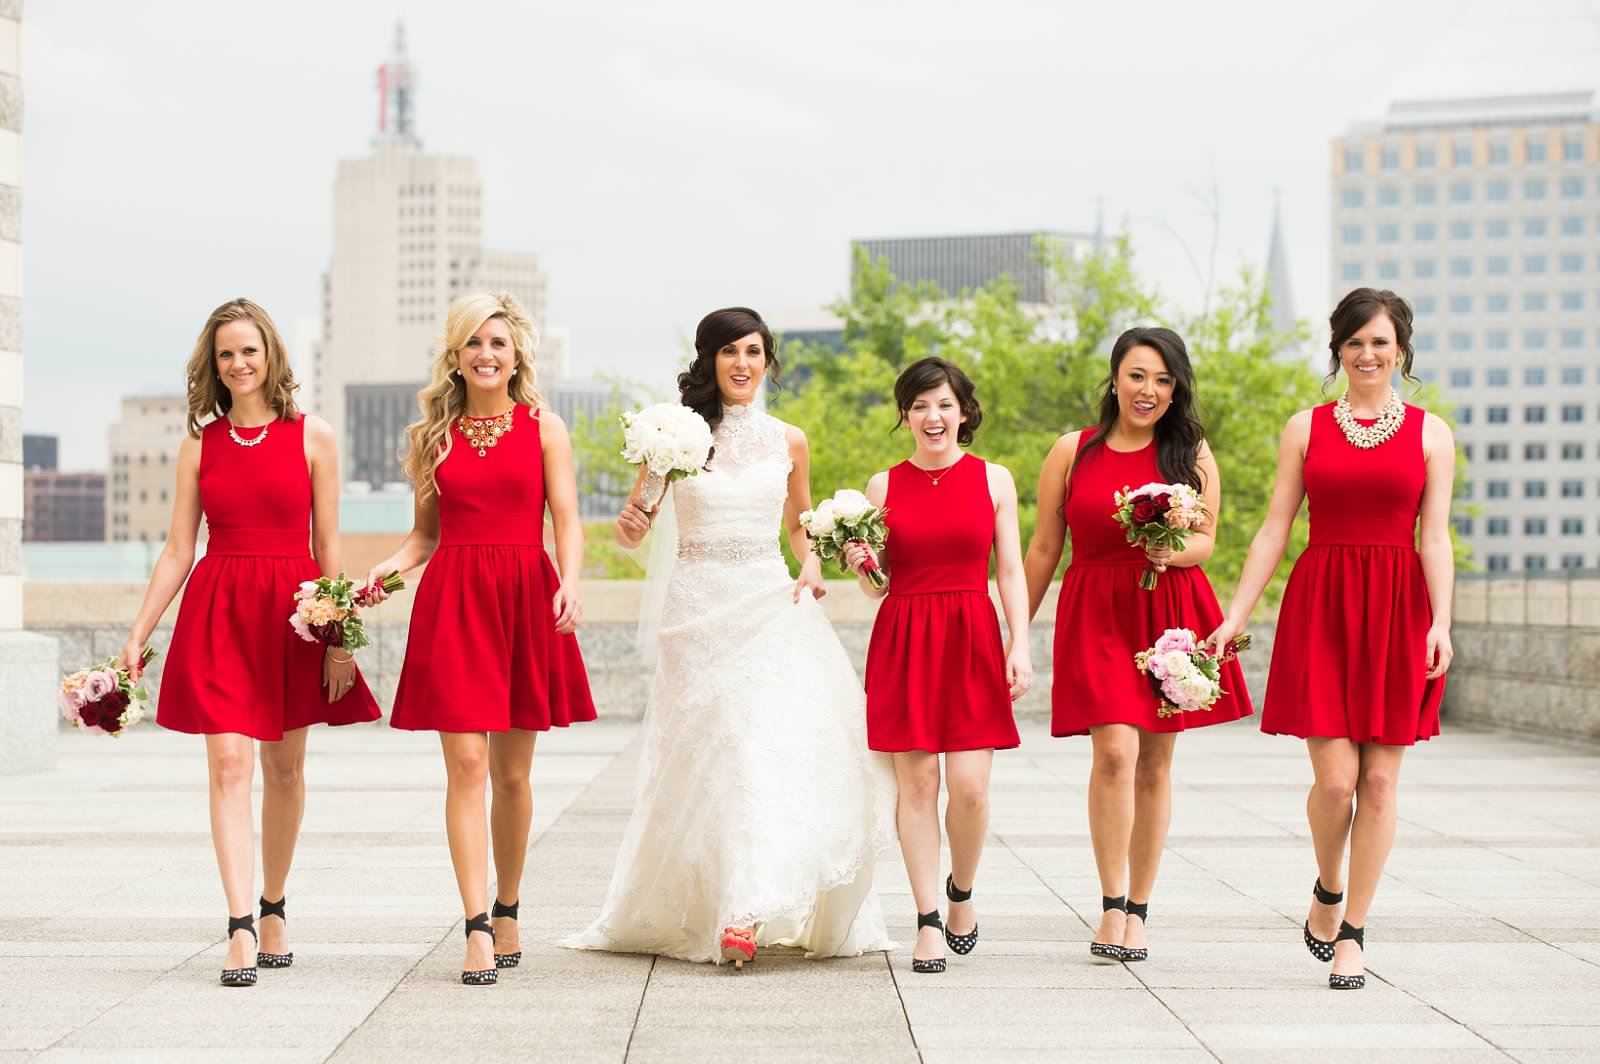 Bride and bridesmaids walking with red bridesmaid dresses and red, white, and pink bouquets.jpg